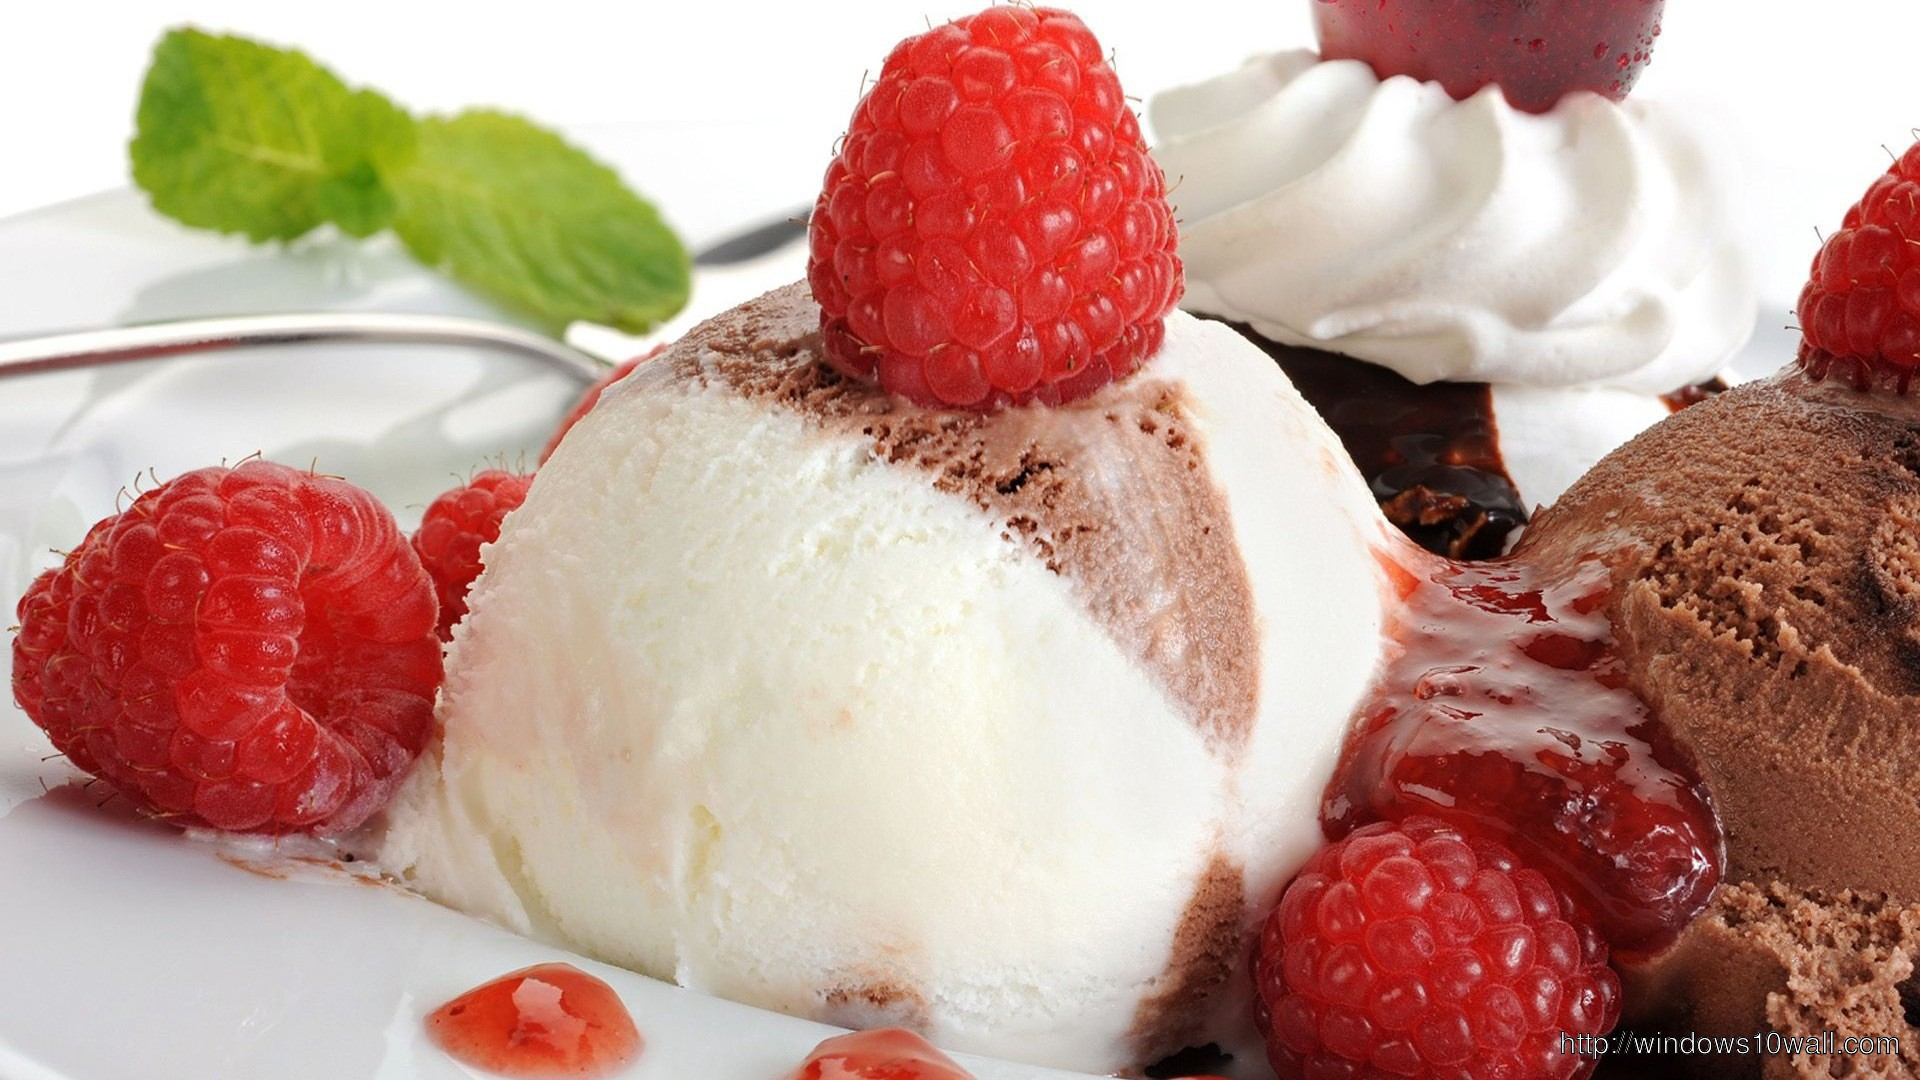 Strawberry Chocolate Ice Cream Hd 1080p Wallpaper ...